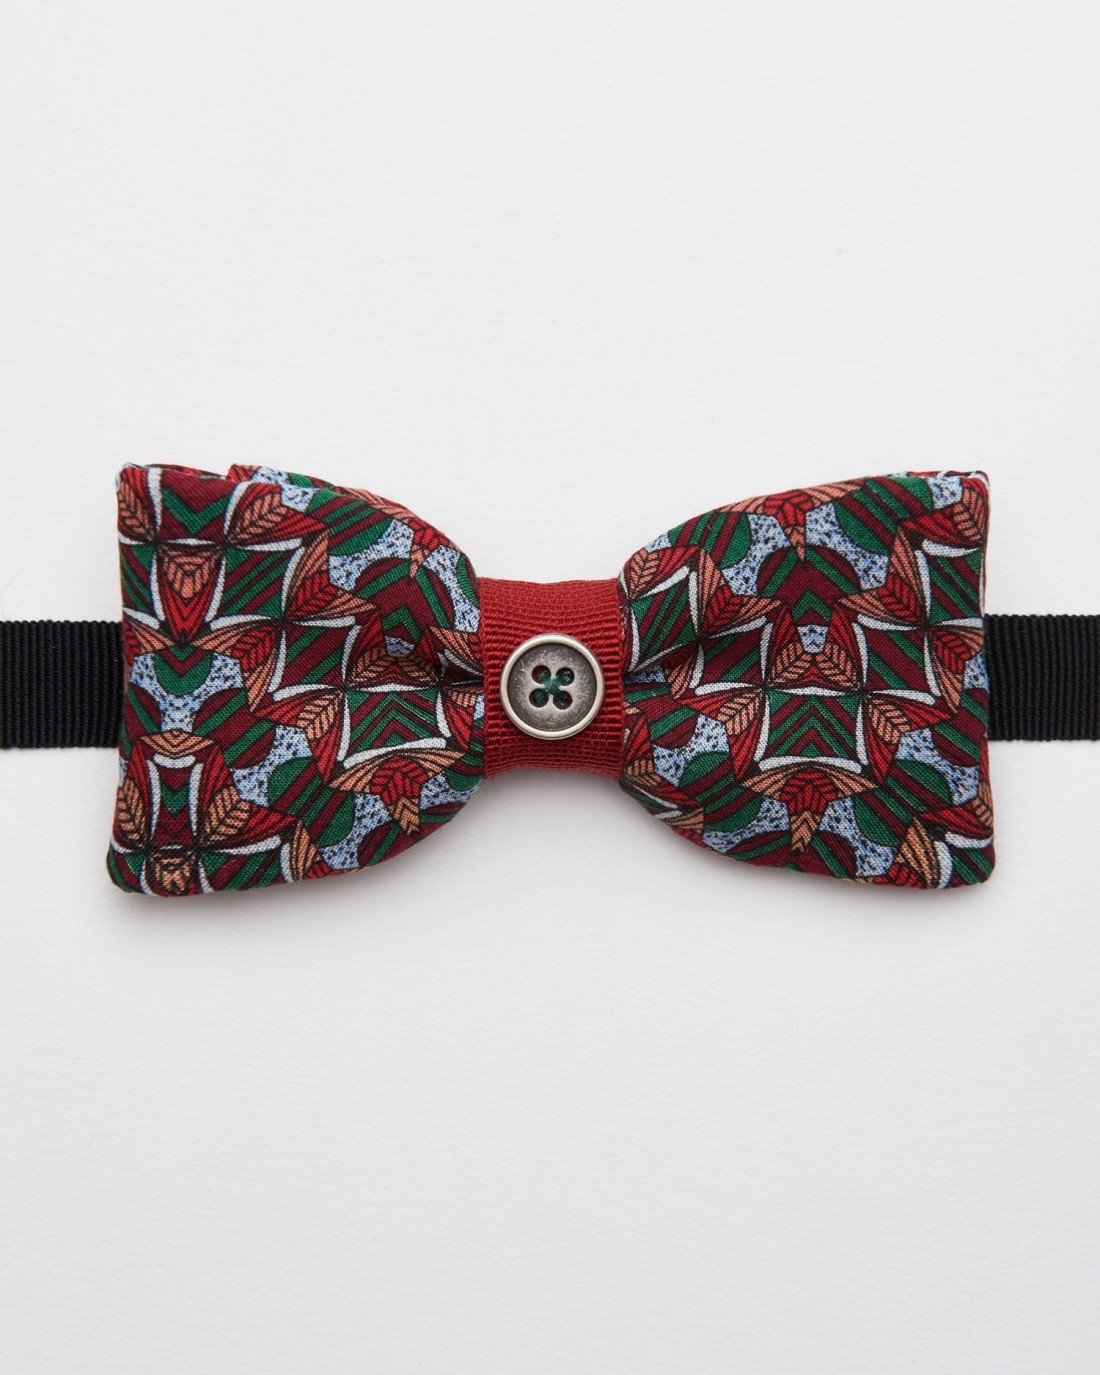 Bow Tie Marmore Red